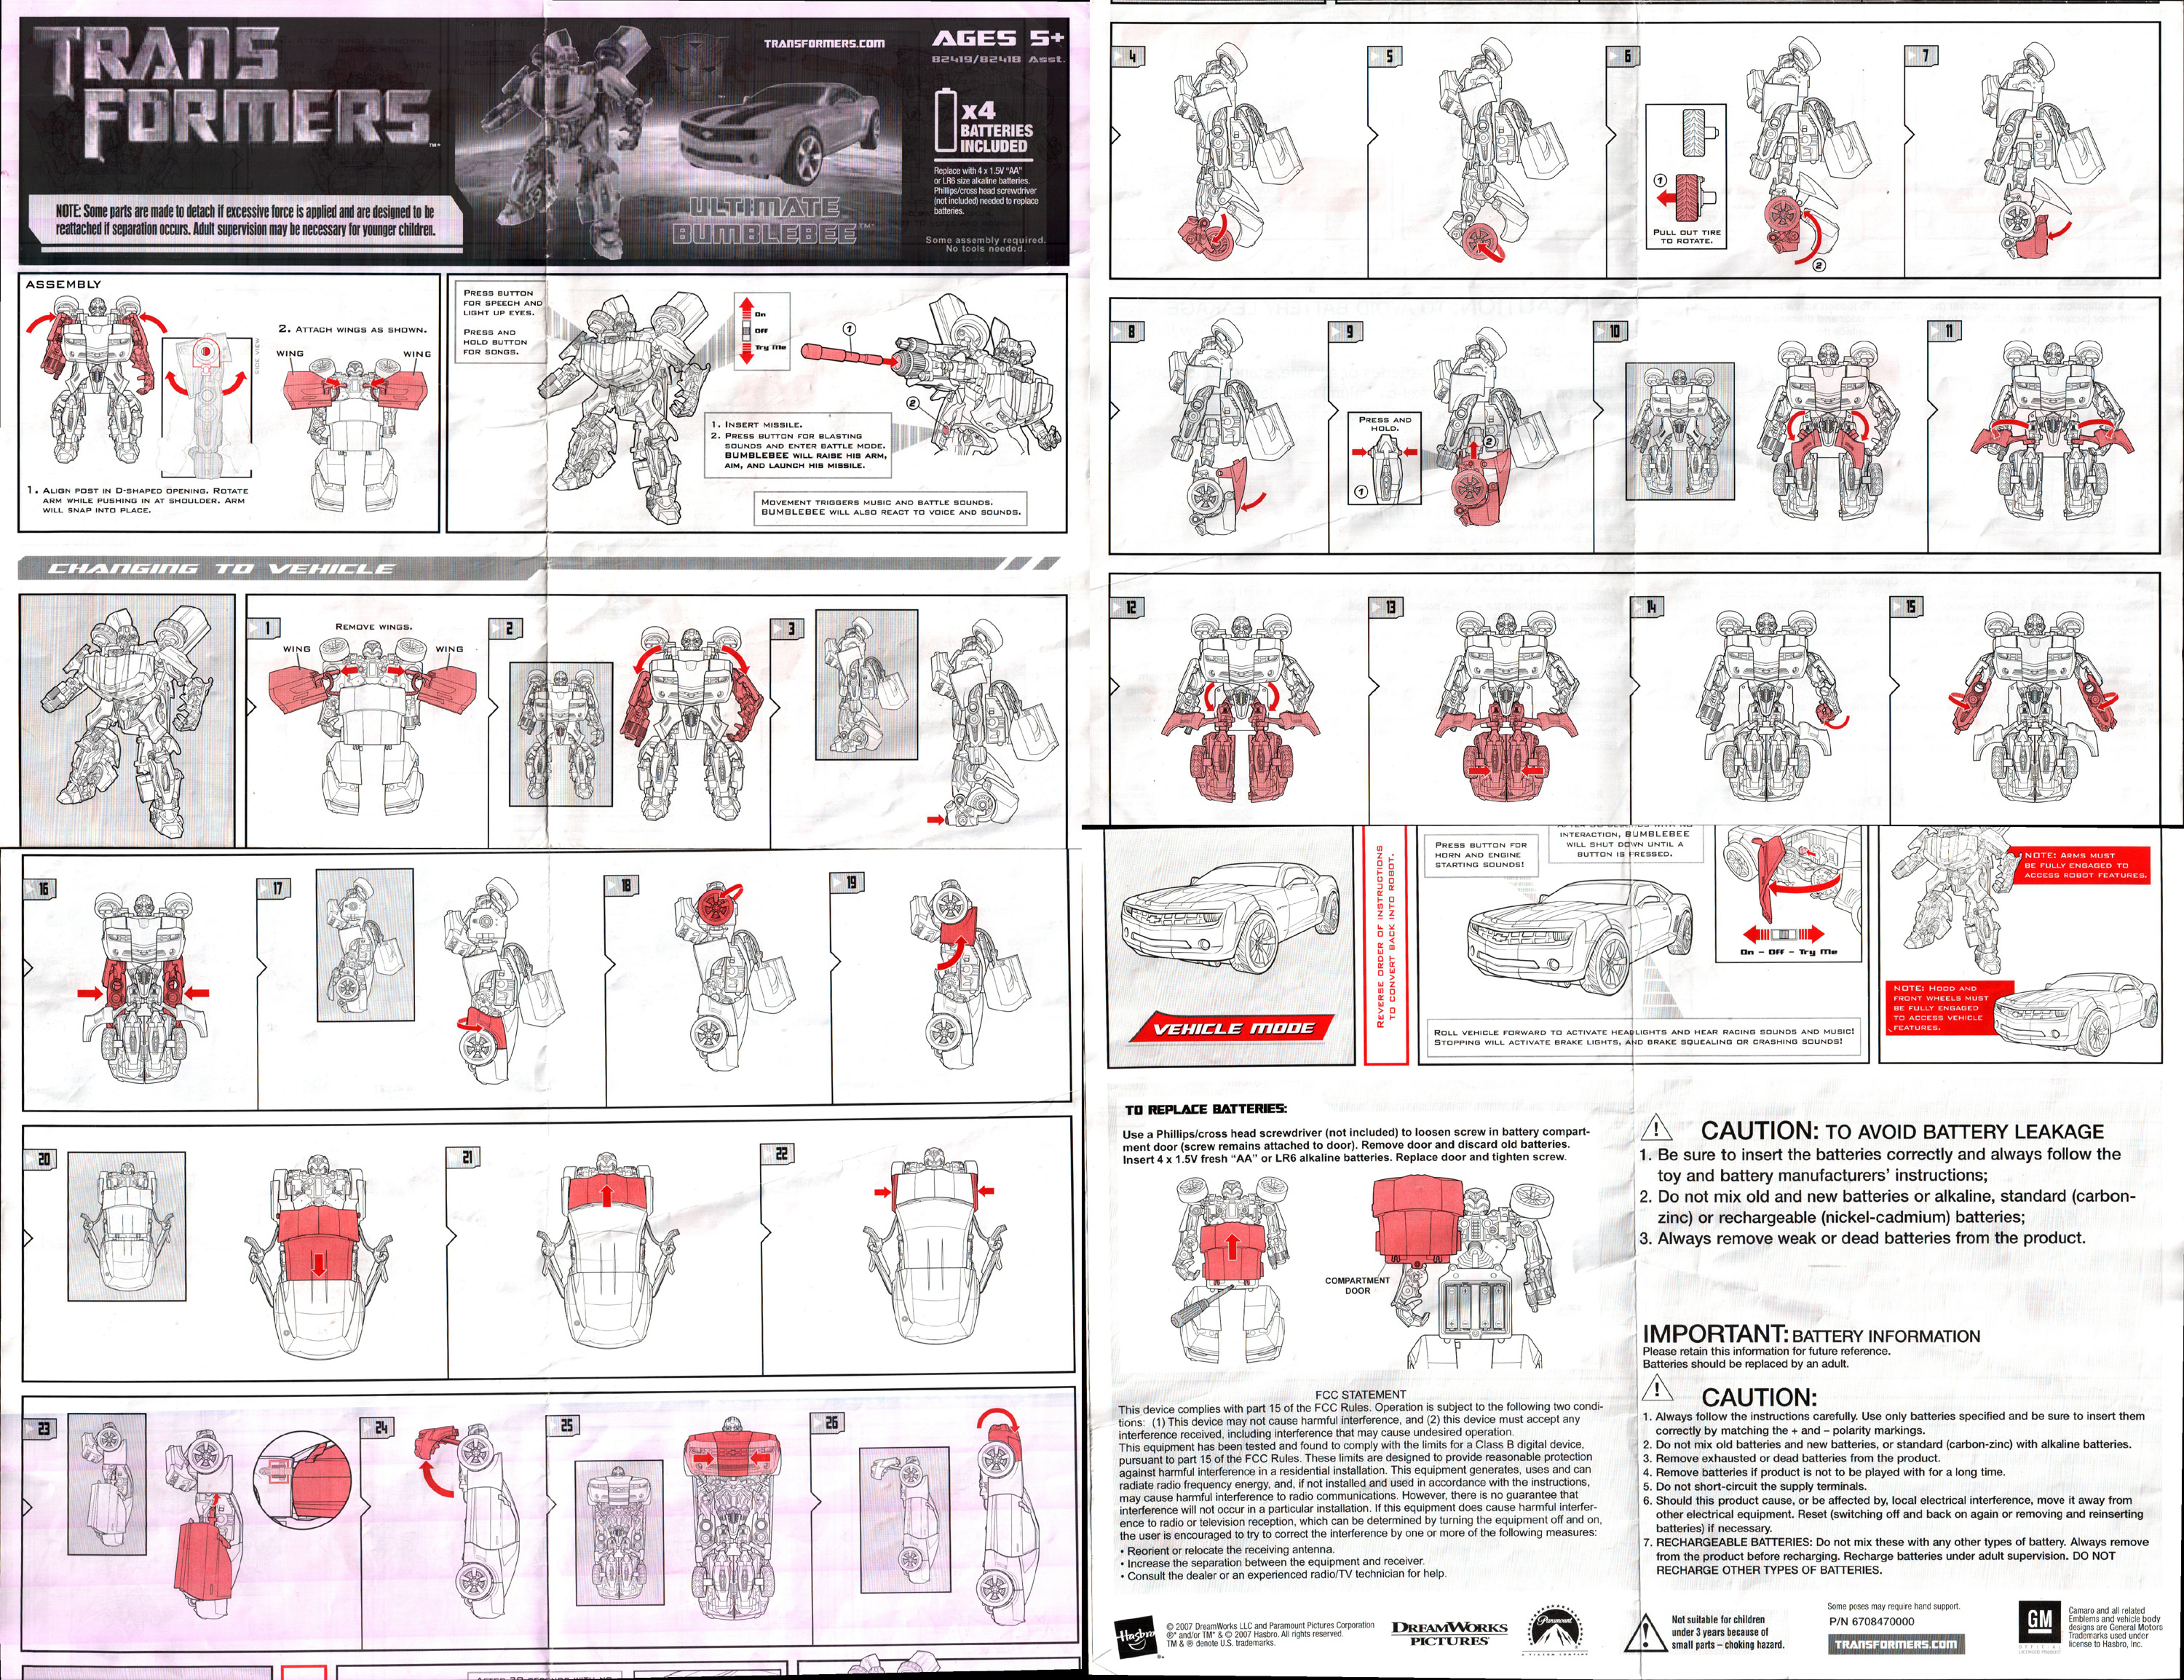 Bumblebee transformers toy instructions.